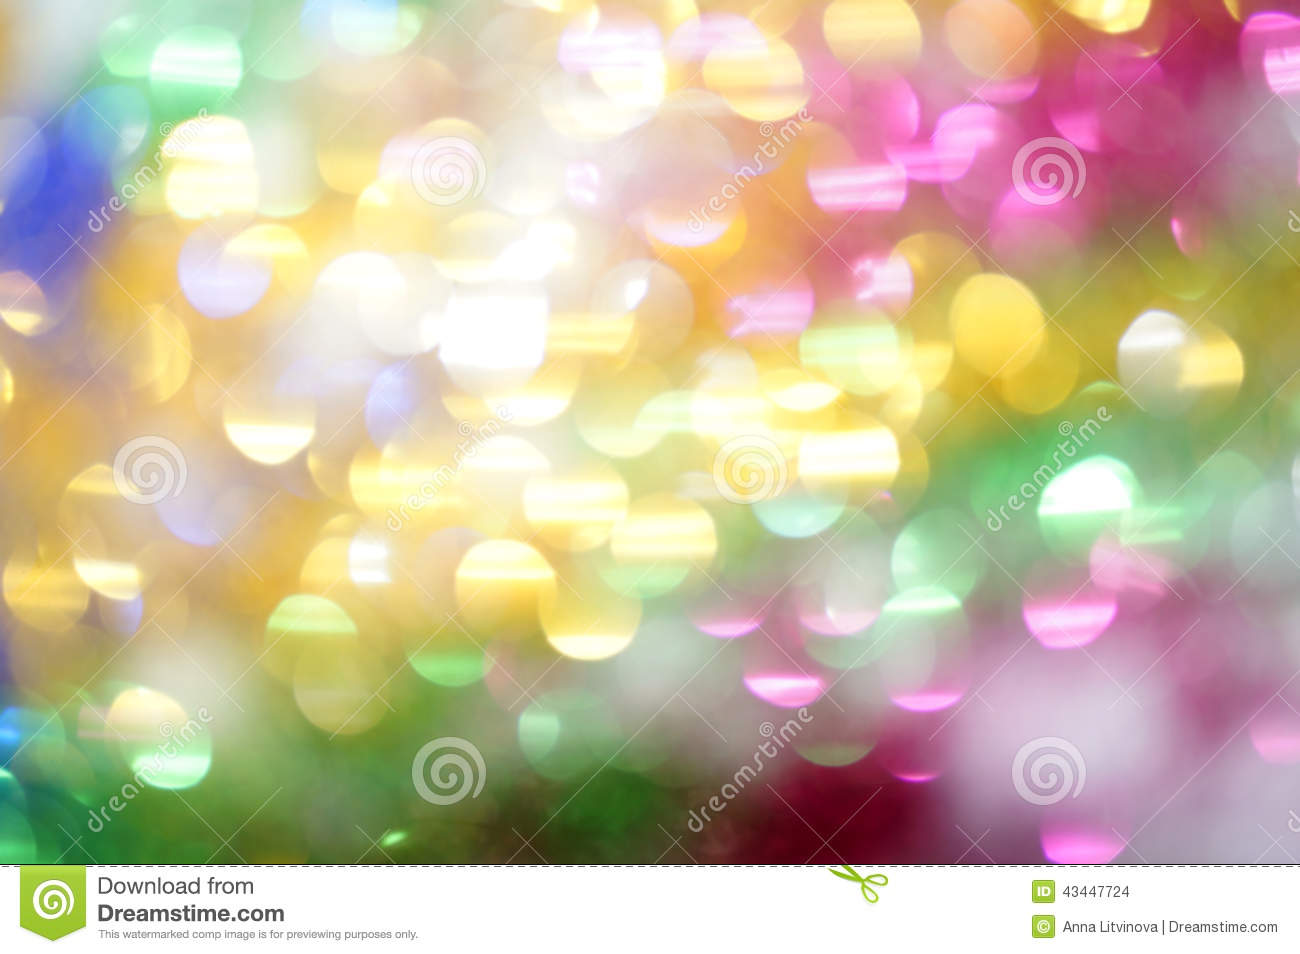 Bright Multi Colored Spots As Abstract Background Stock